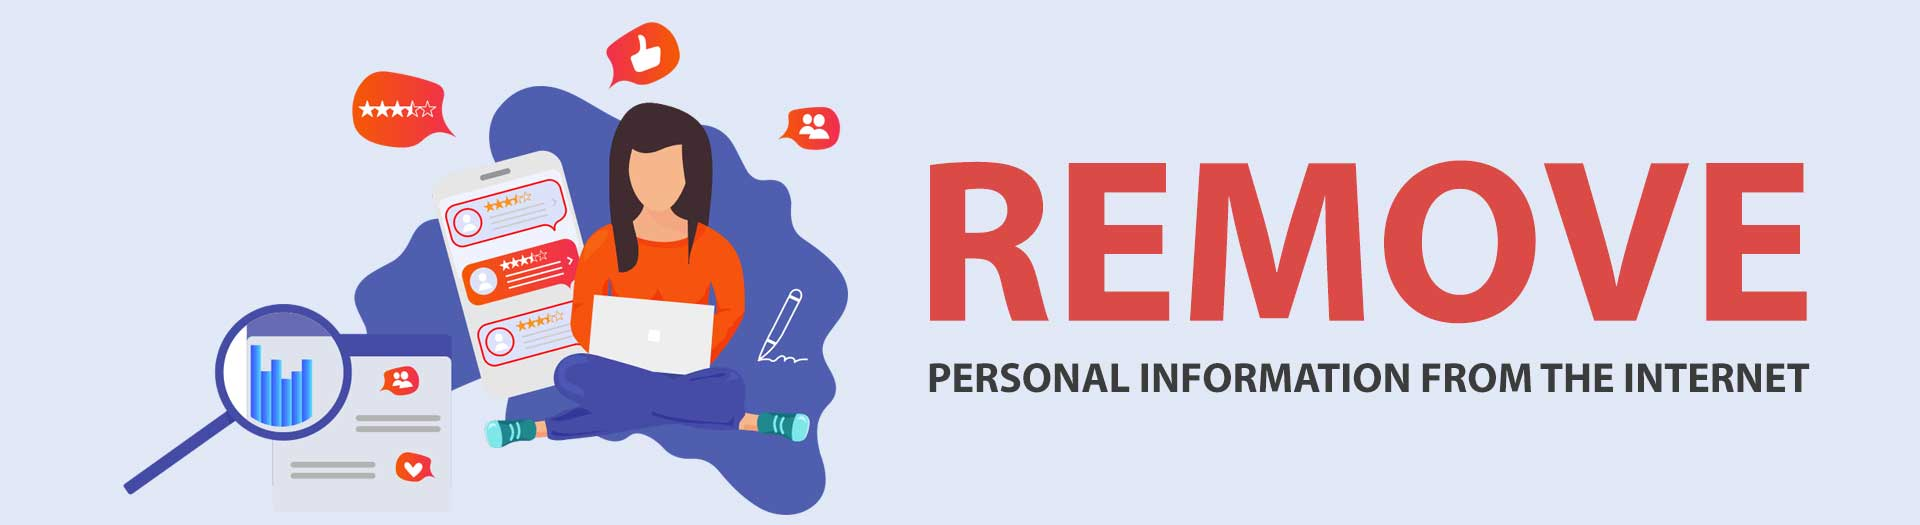 Remove Personal Information from the Internet